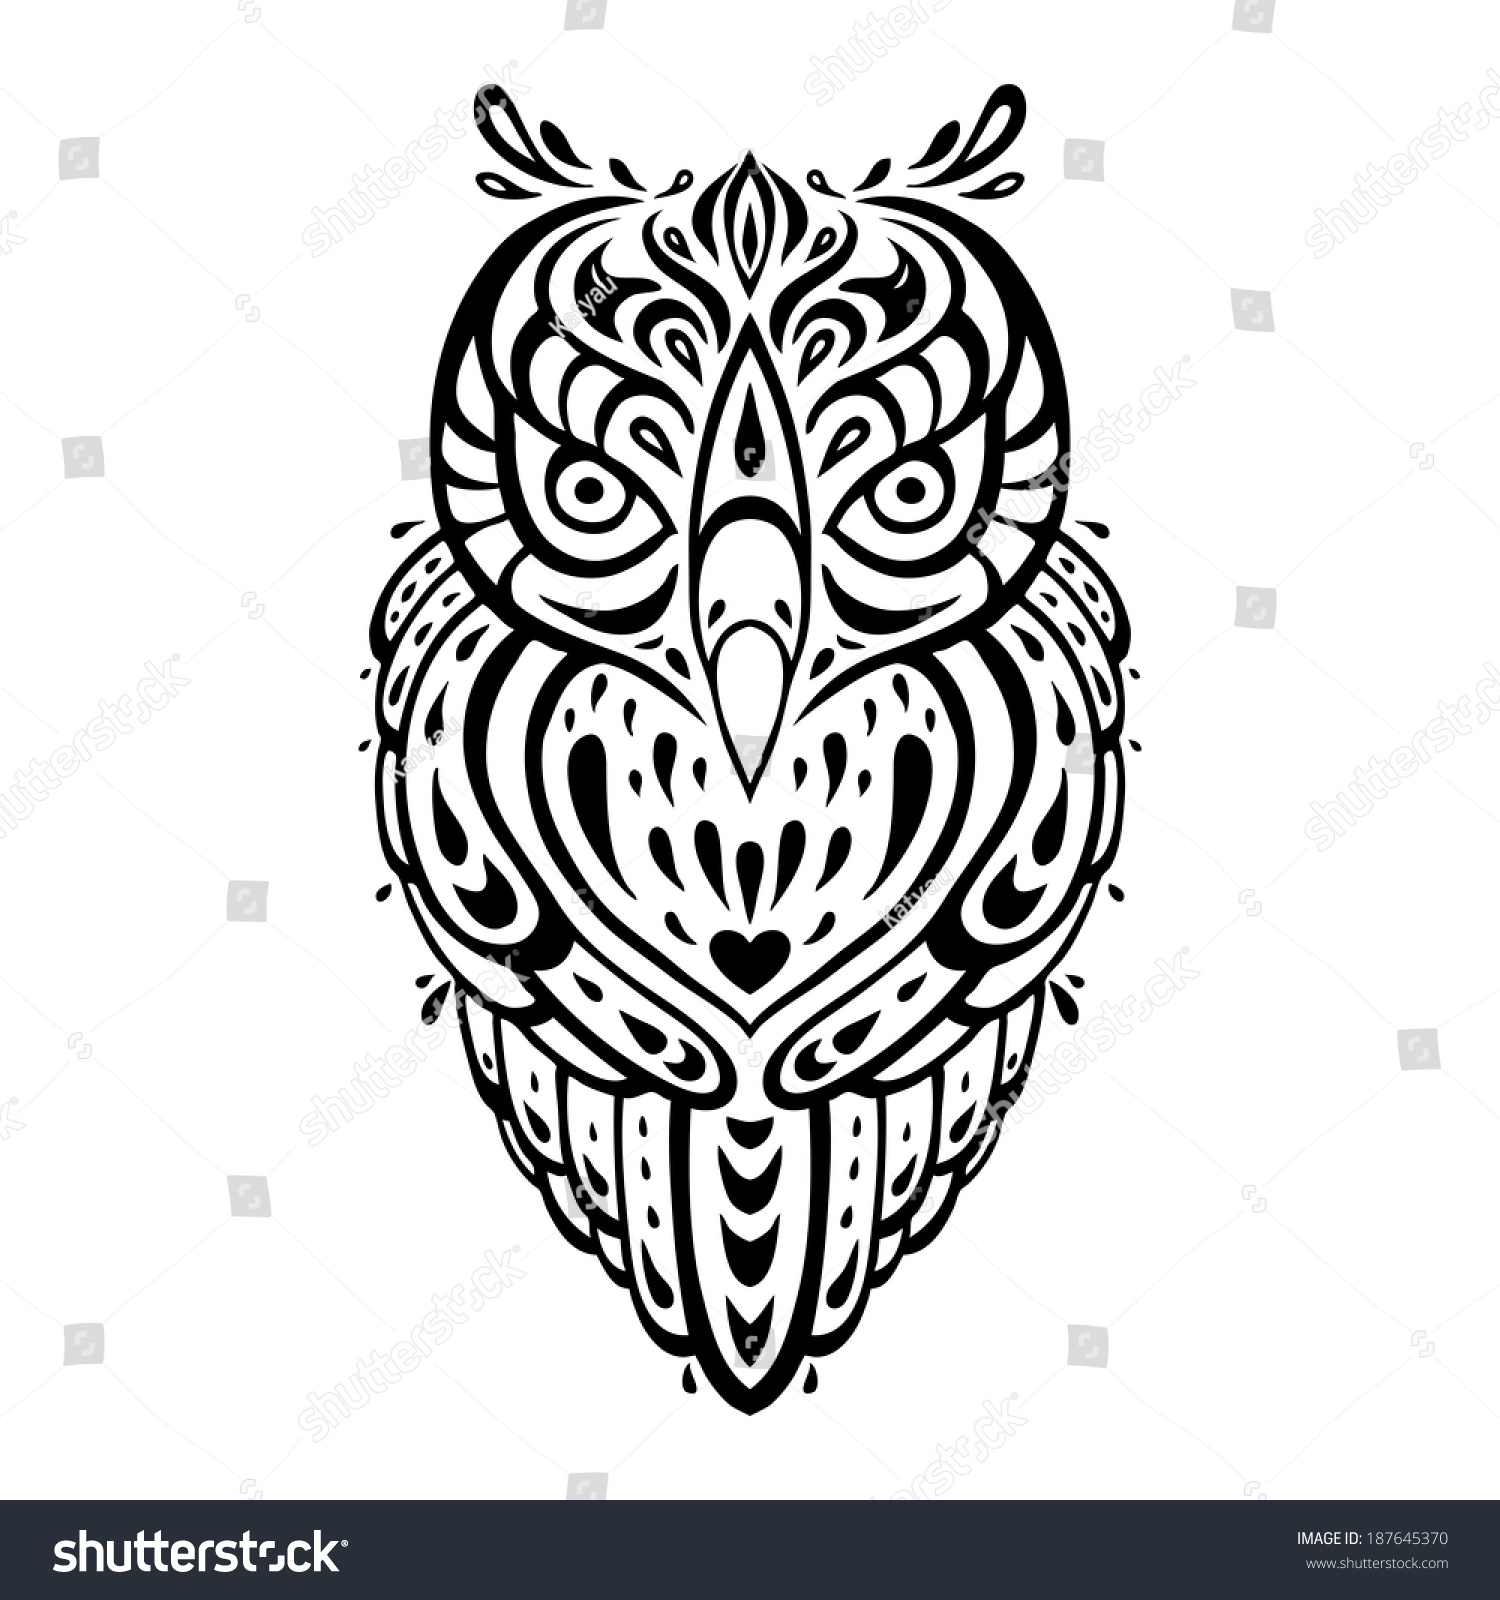 97f3f4025 Owl. Tribal pattern. Polynesian tattoo.… Stock Photo 187645370 ...